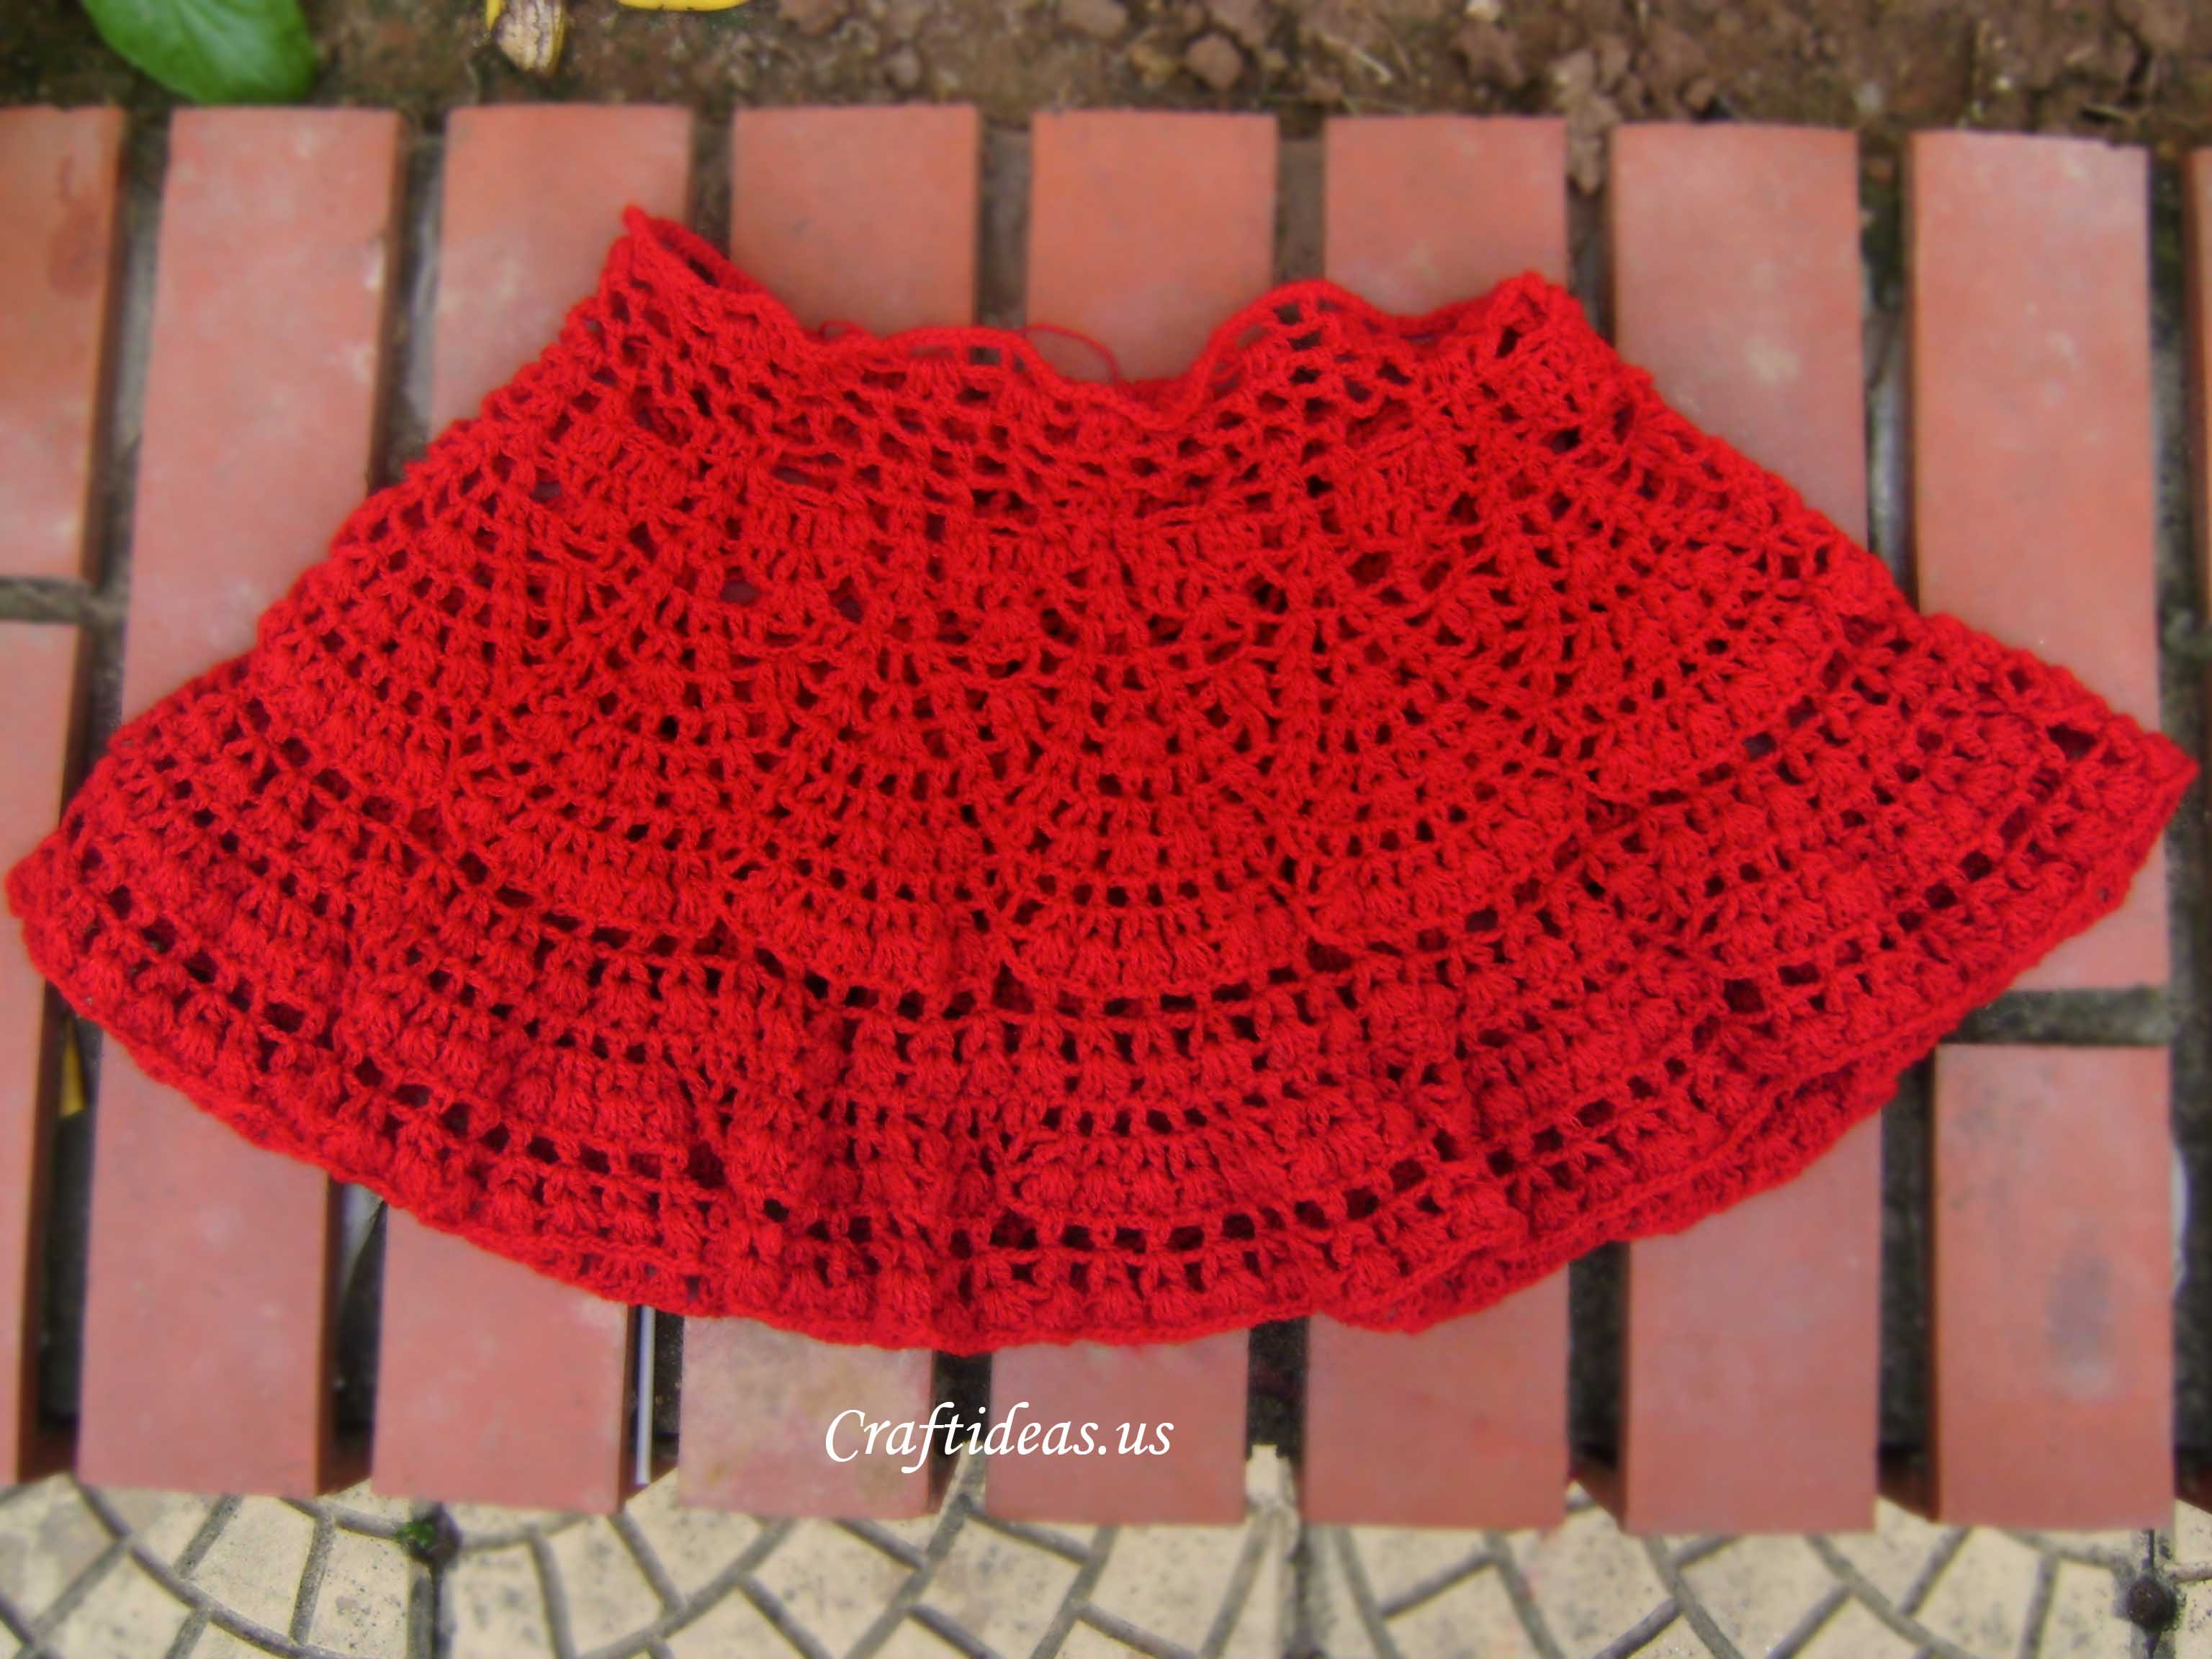 Crochet pattern: crochet beauty skirt for little girl